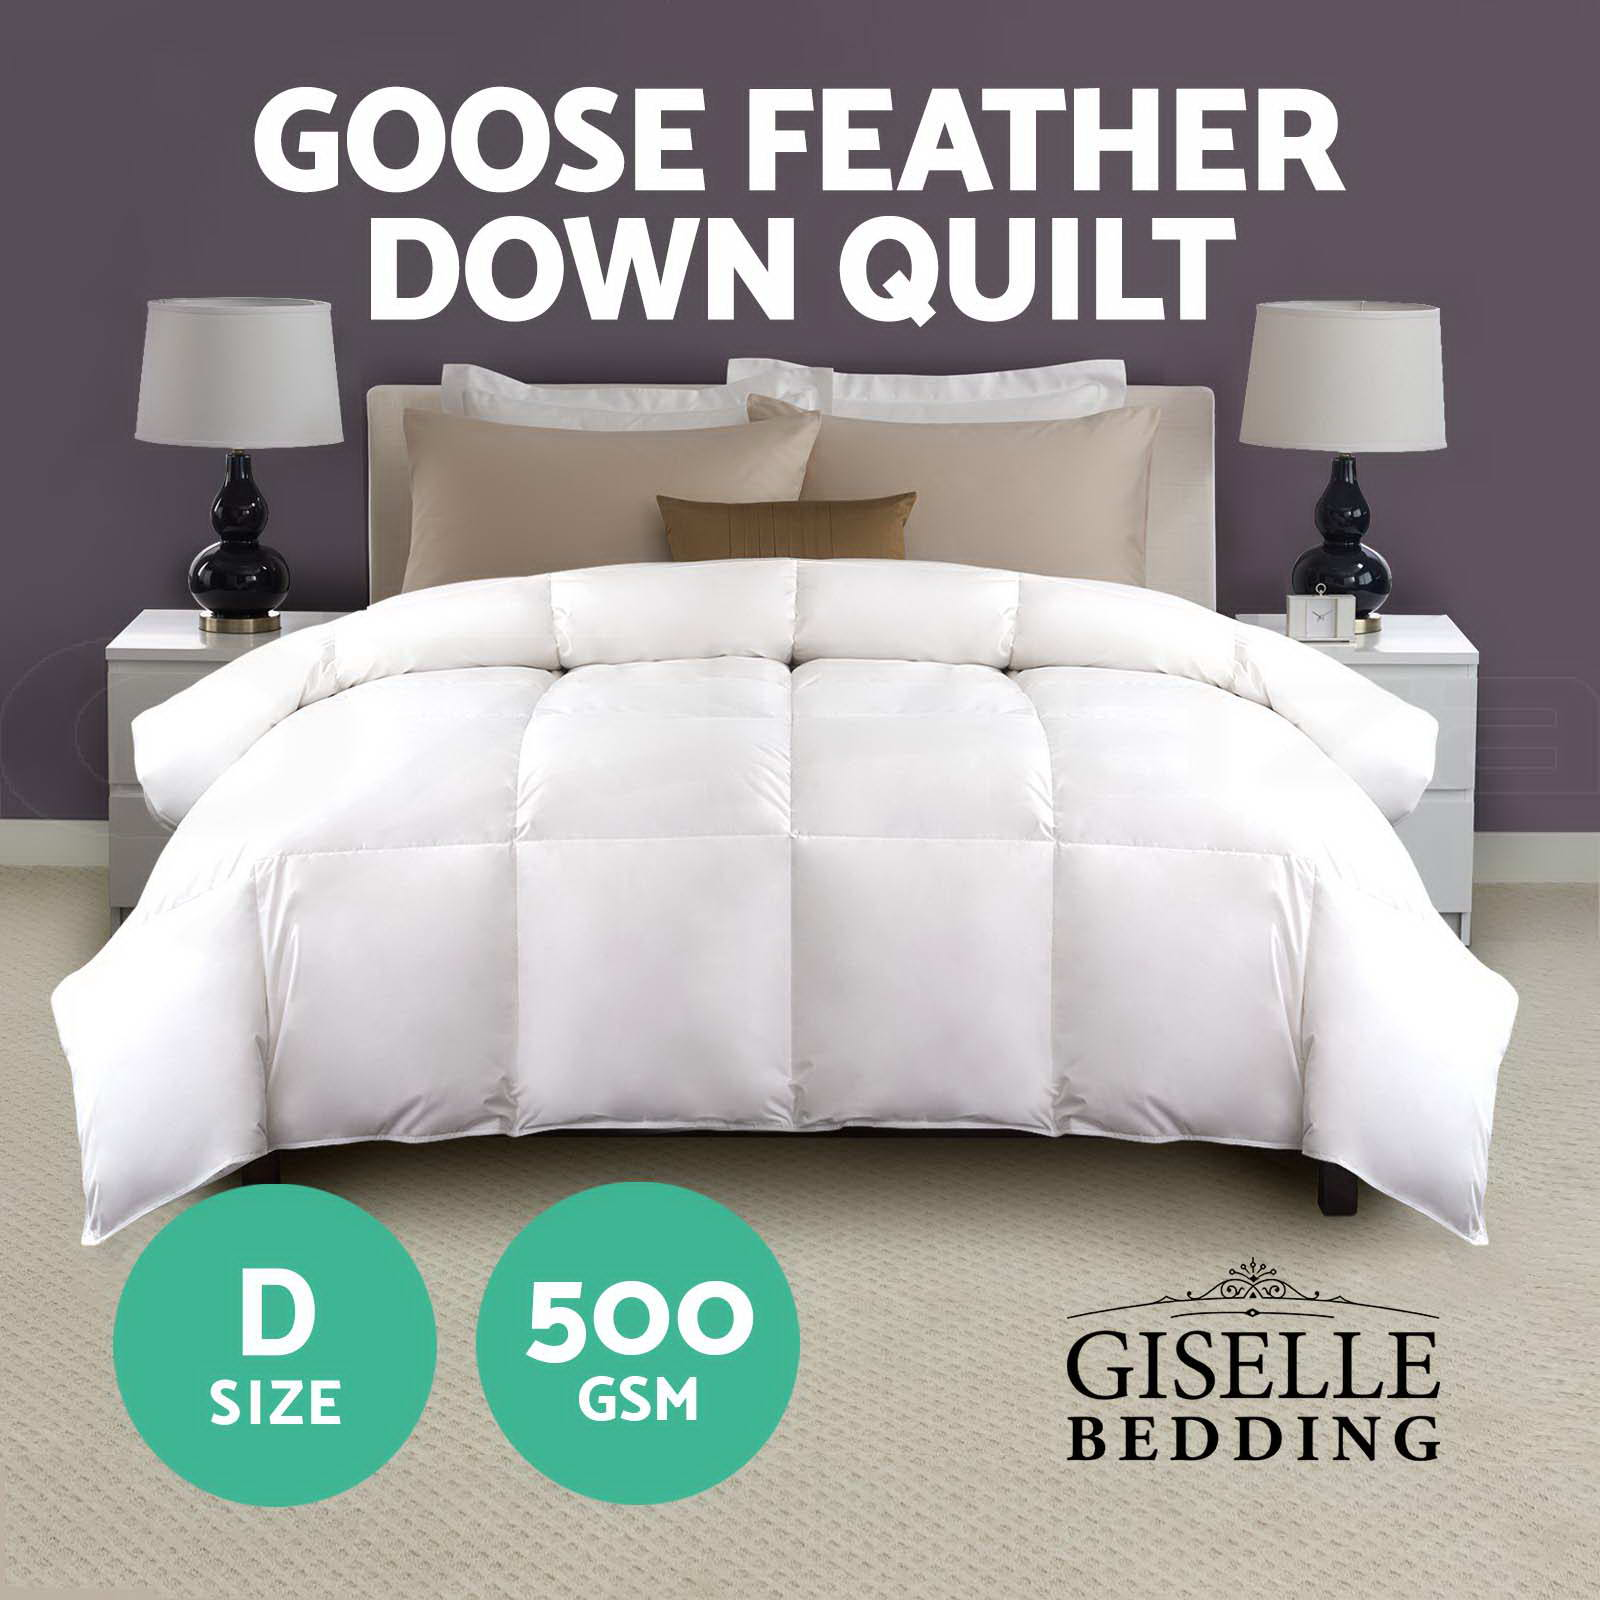 Duck Feather Doona 500gsm Goose Down Feather Quilt Blanket Duvet Winter Duck